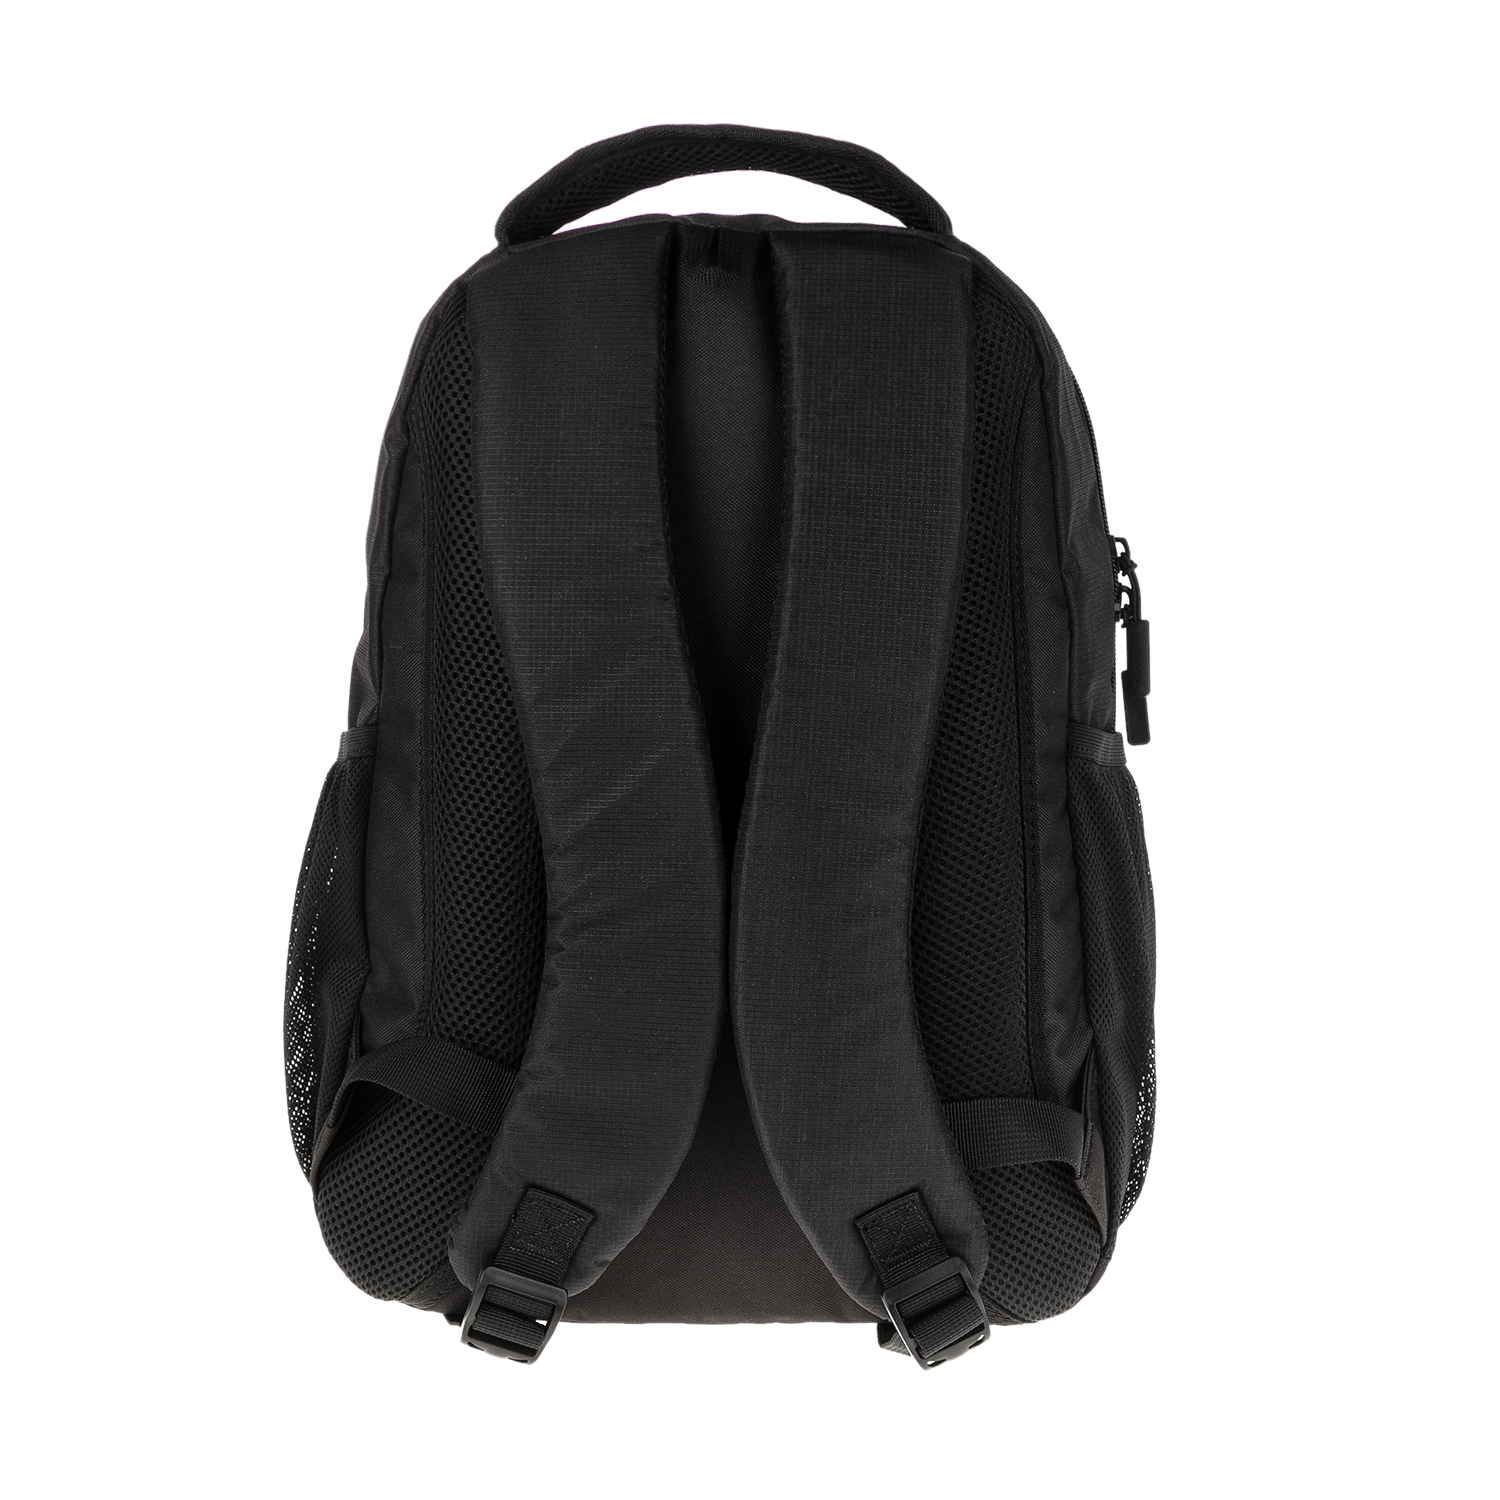 49ba52b36e SAMSONITE - Τσάντα πλάτης WANDERPACKS BACKPACK S μαύρη